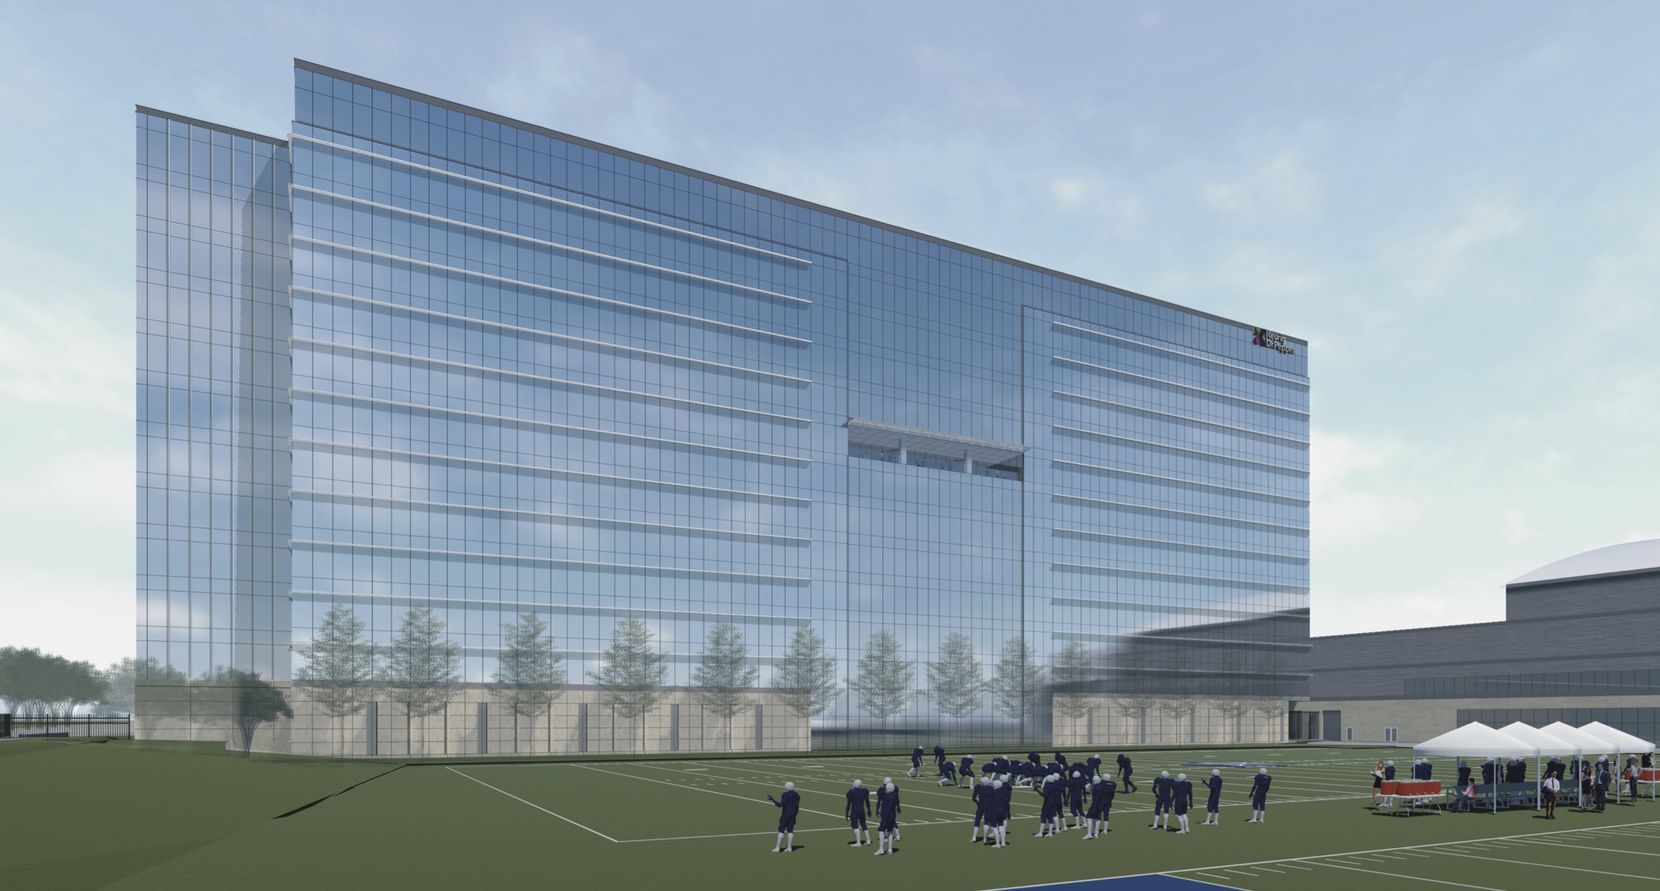 An artist's rendering of Dr Pepper's new Texas headquarters is at the Dallas Cowboys' Star development in Frisco.